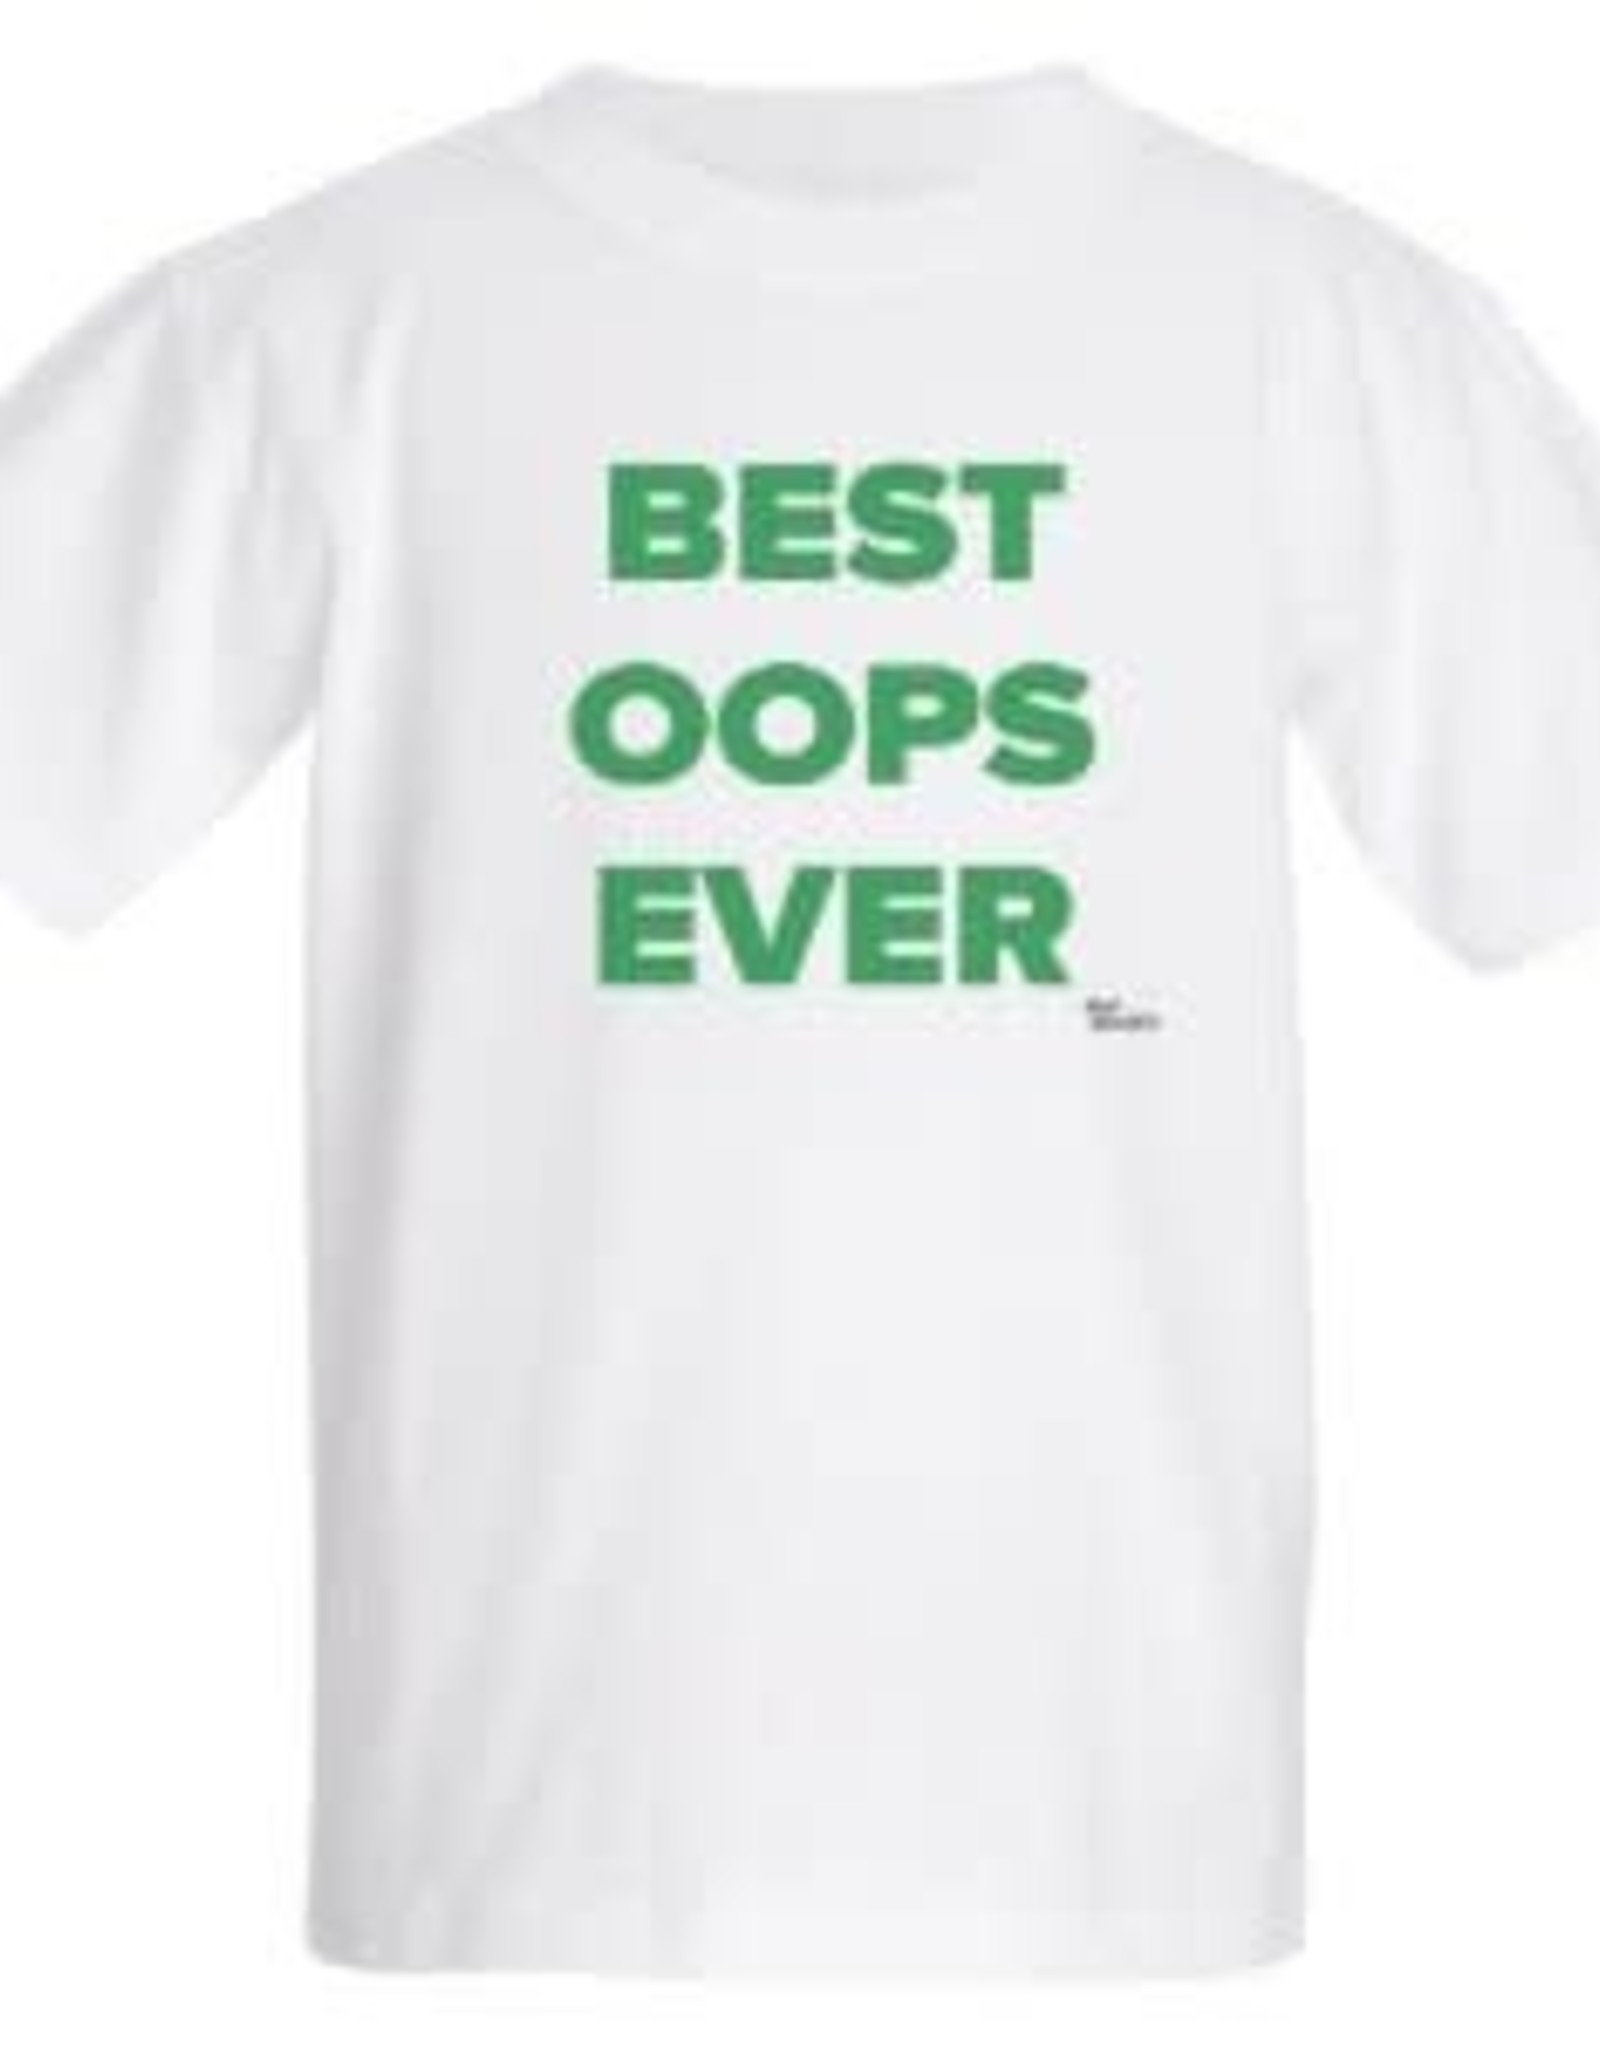 T-Shirt - Best Oops Ever